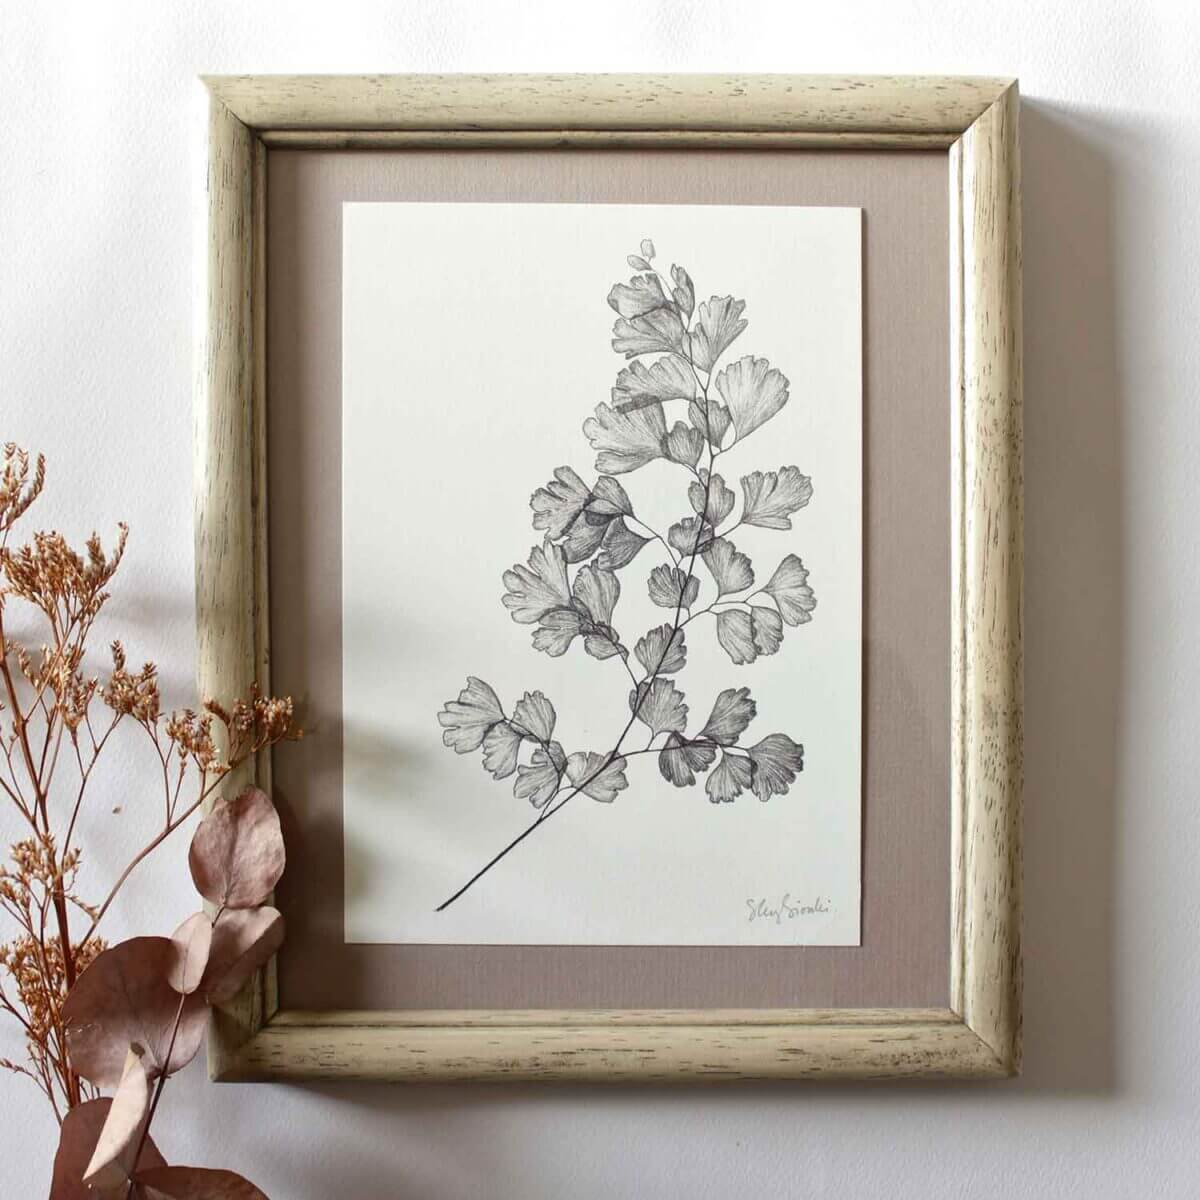 Maidenhair Fern Print Framed